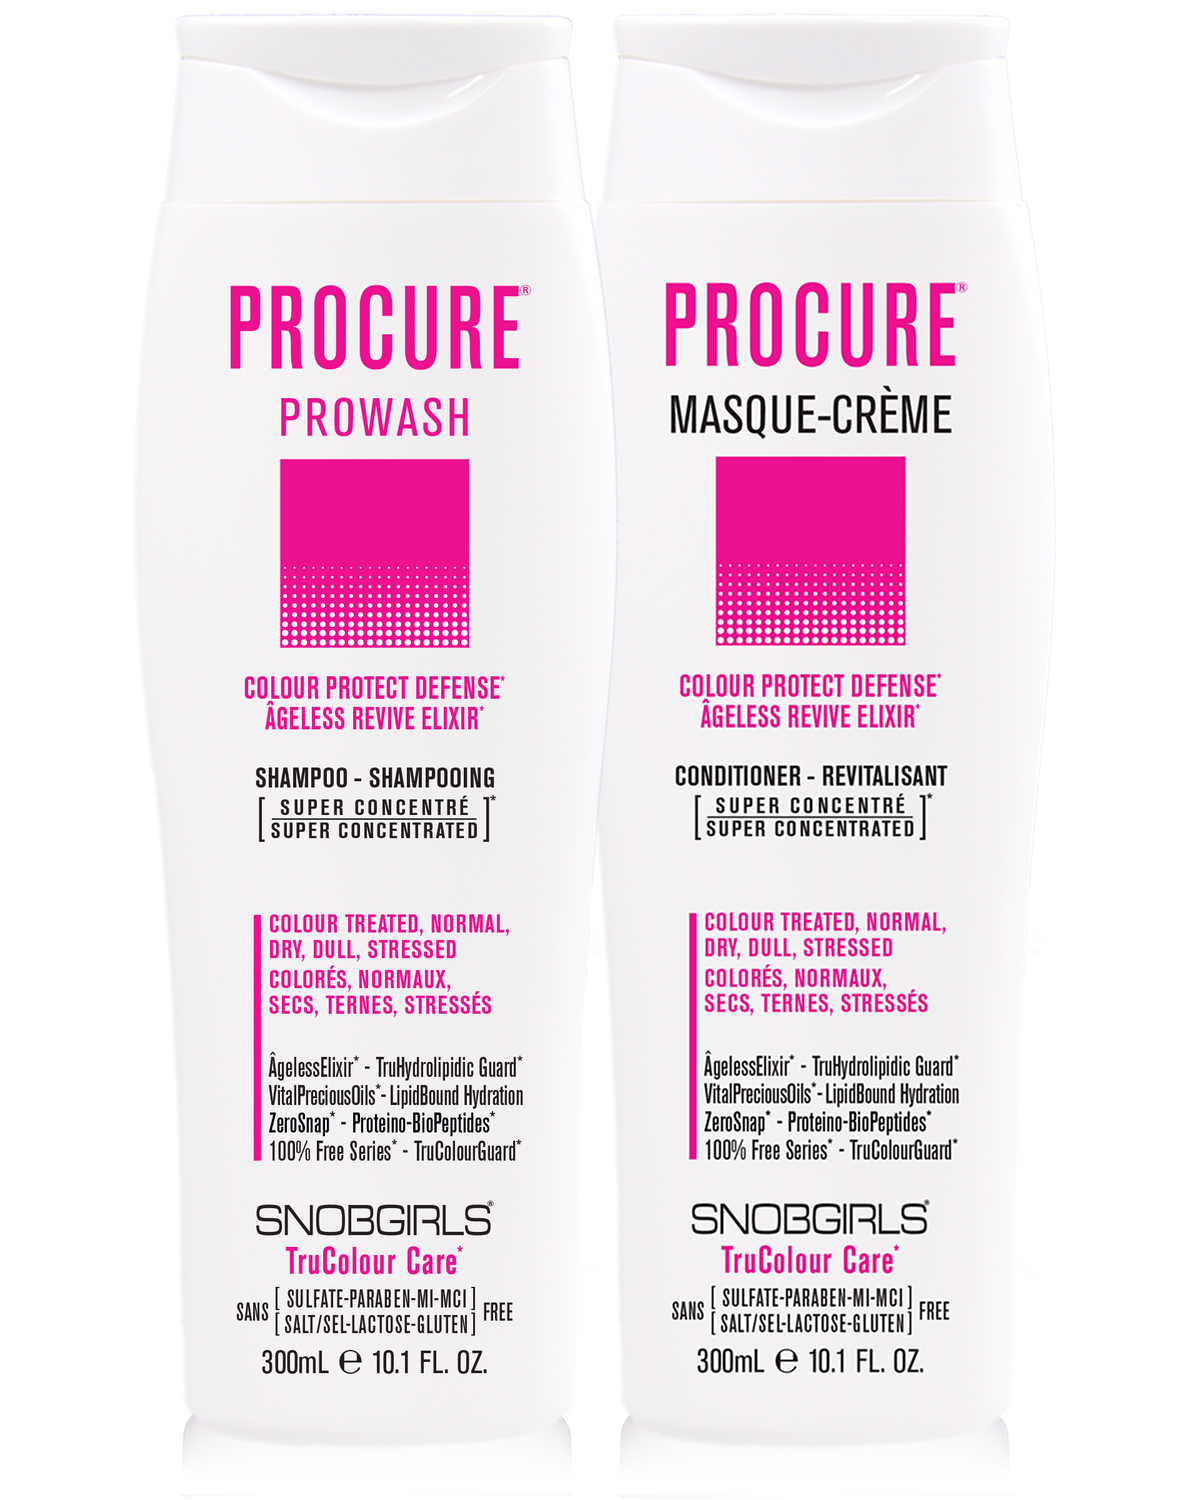 DUO PROCURE Prowash + Masque-Creme 300 mL - SNOBGIRLS.com